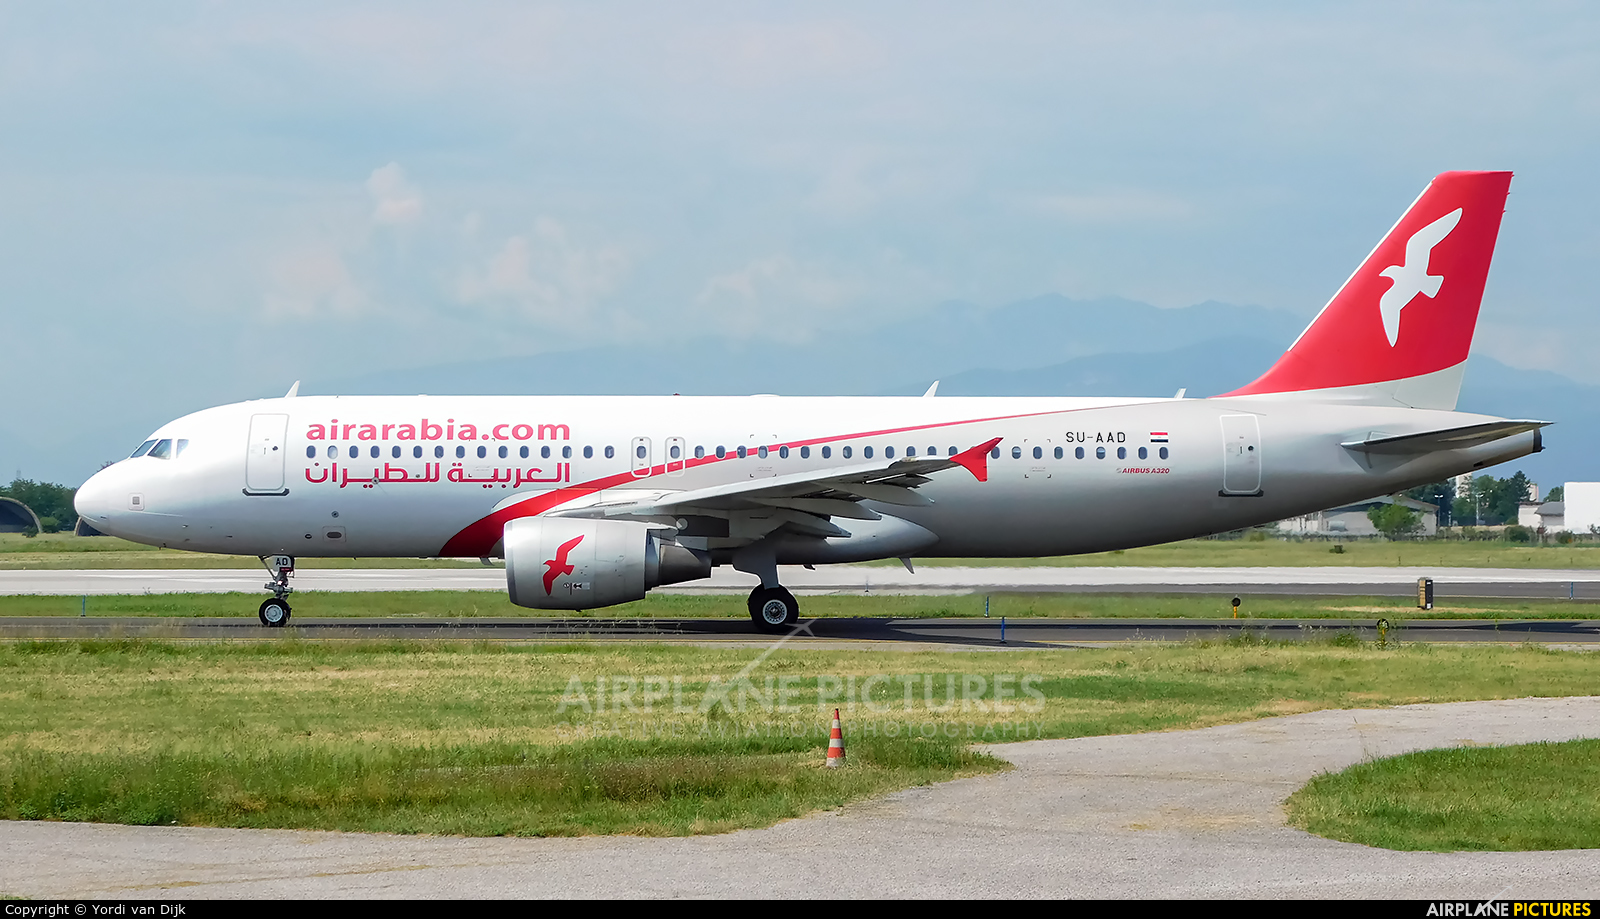 Air Arabia (Egypt) SU-AAD aircraft at Verona - Villafranca